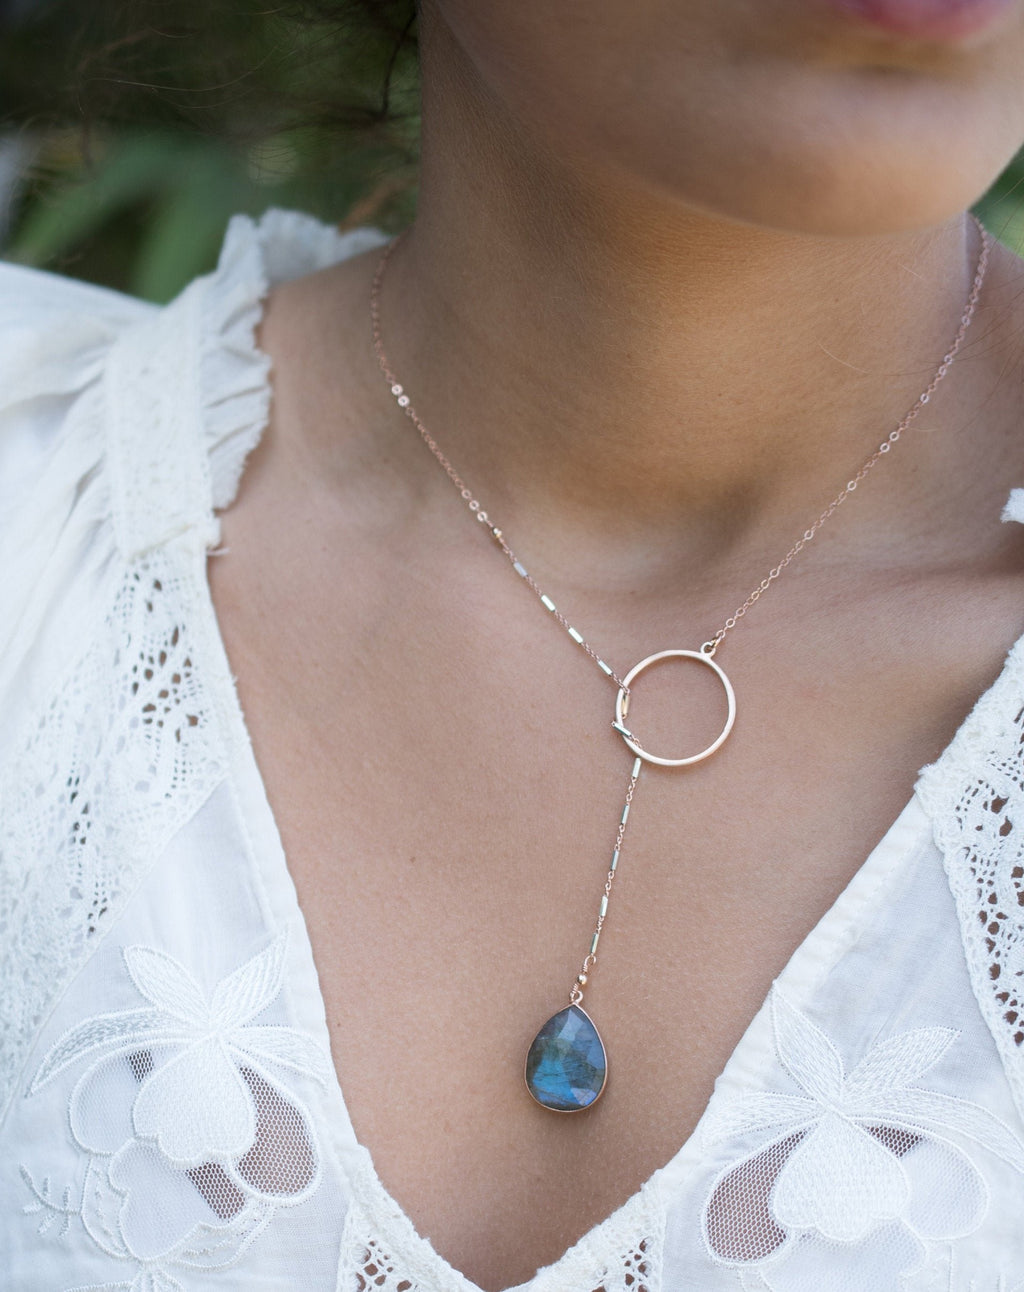 Isabel Lariat Necklace * Labradorite * Rose Gold Filled, Gold Filled or Sterling Silver * BJN061